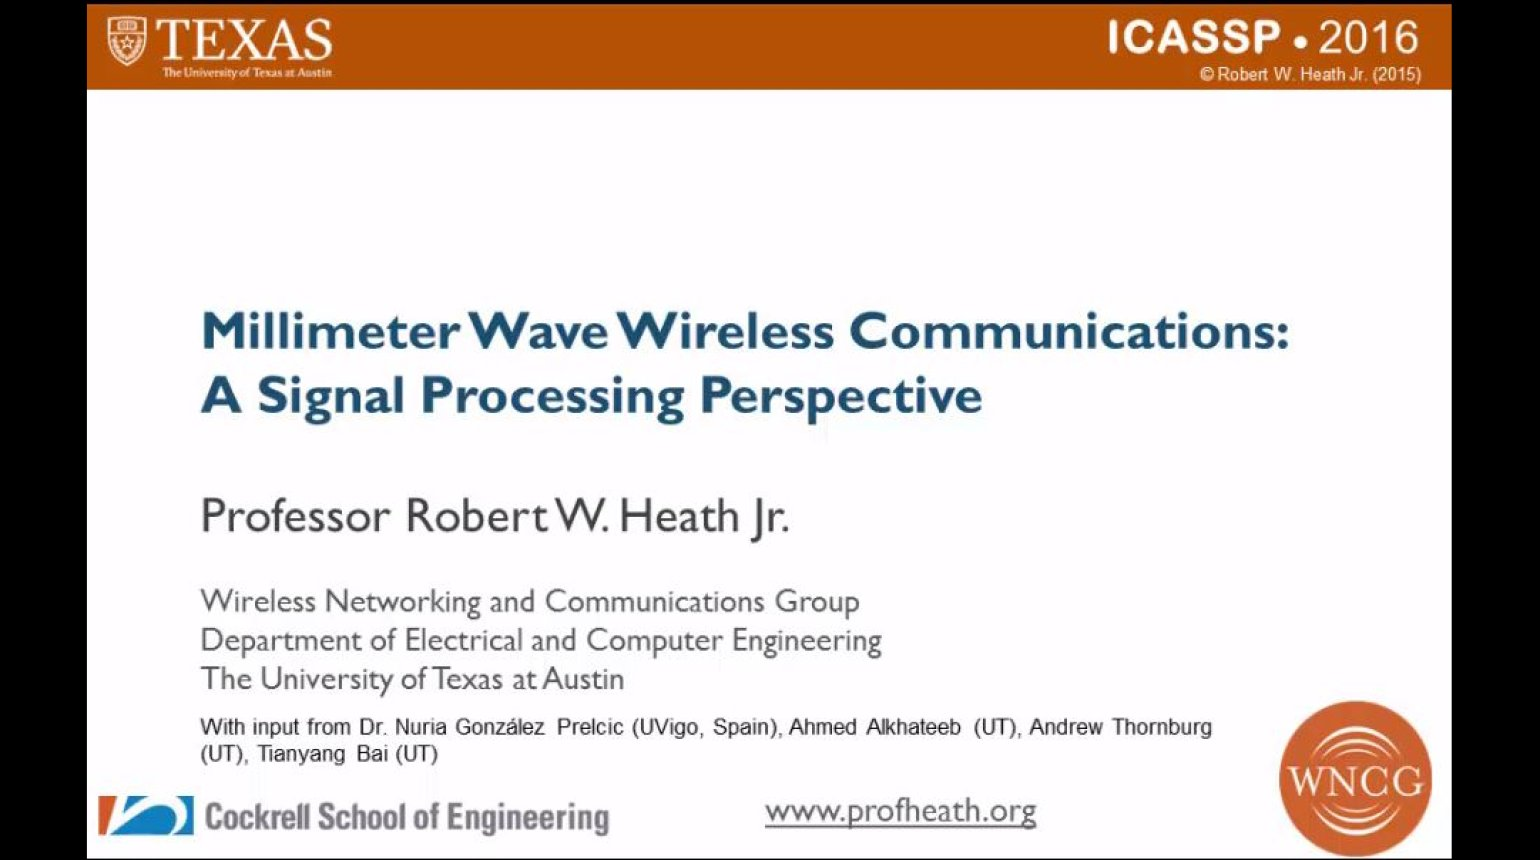 ICASSP 2016 Millimeter Wave Wireless Communications: A Signal Processing Perspective